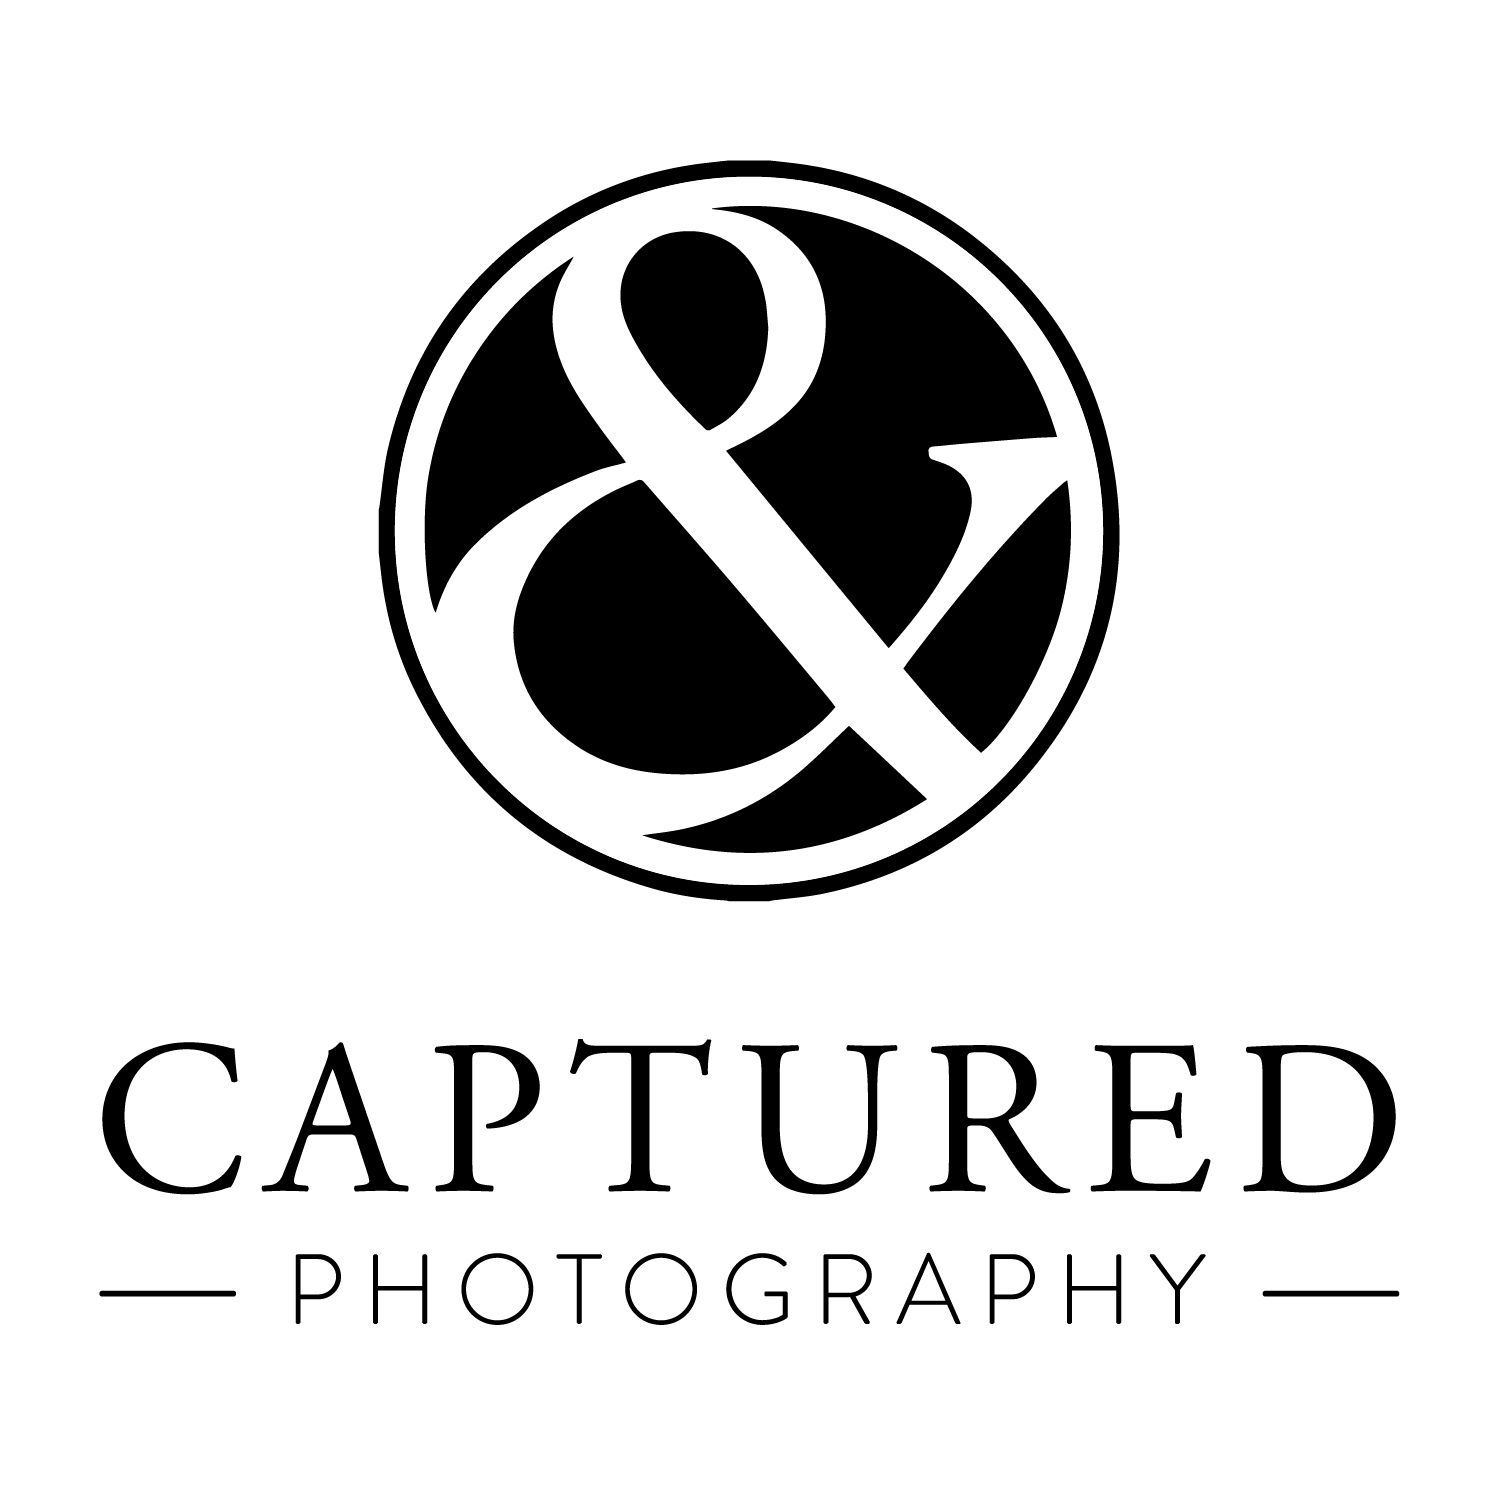 Captured Photography, Midland, MI Photographer, Wedding Photography, Senior Pictures, In Love, Engagement Photos, Family, Kids, Newborn, Maternity, Tri-City, Tricities